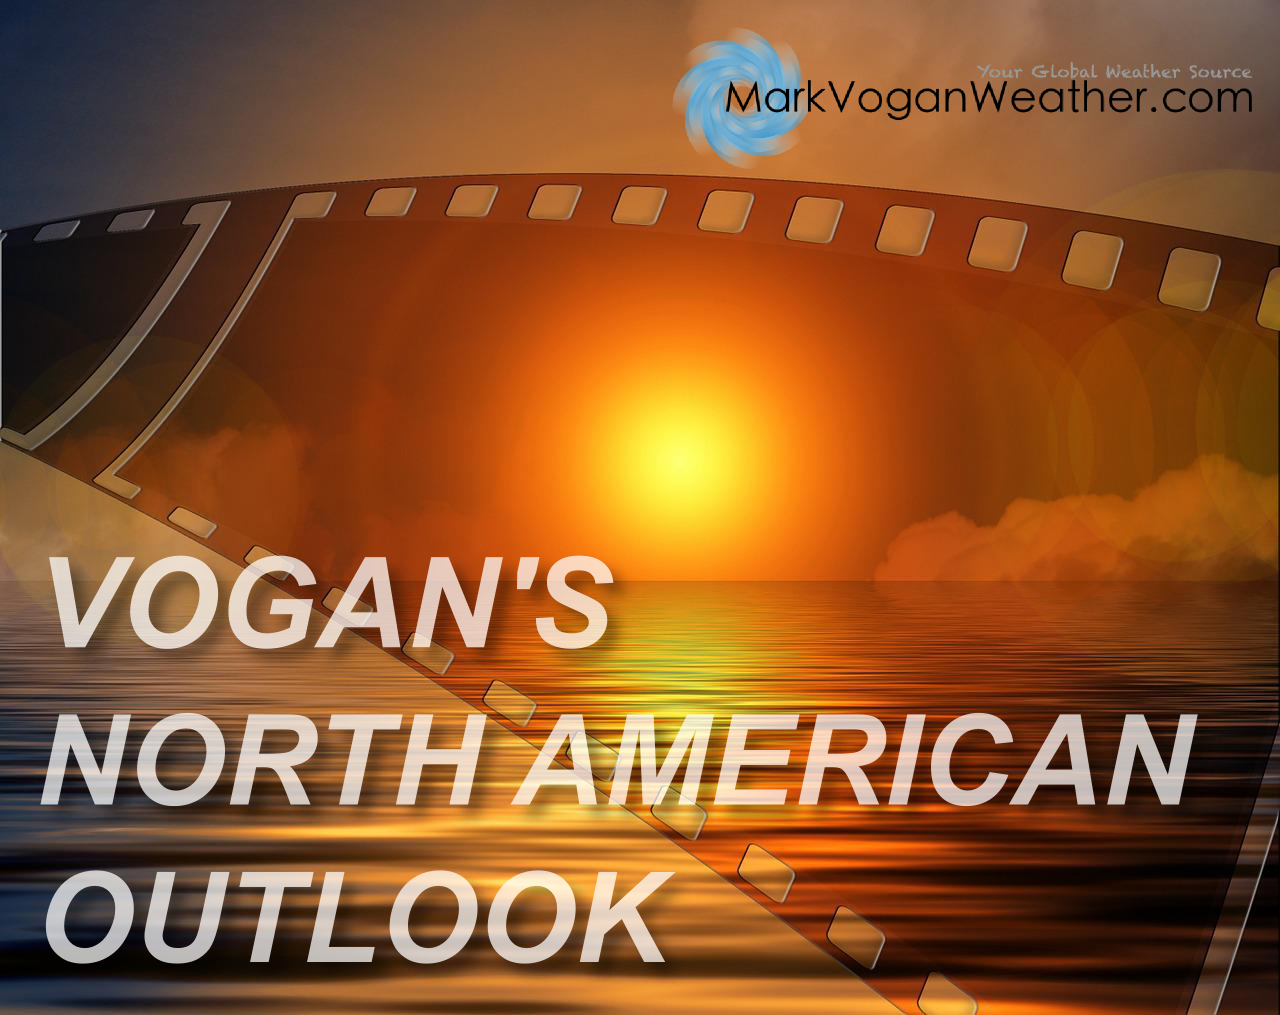 SAT 28 JUNE: VOGAN'S NORTH AMERICAN OUTLOOK